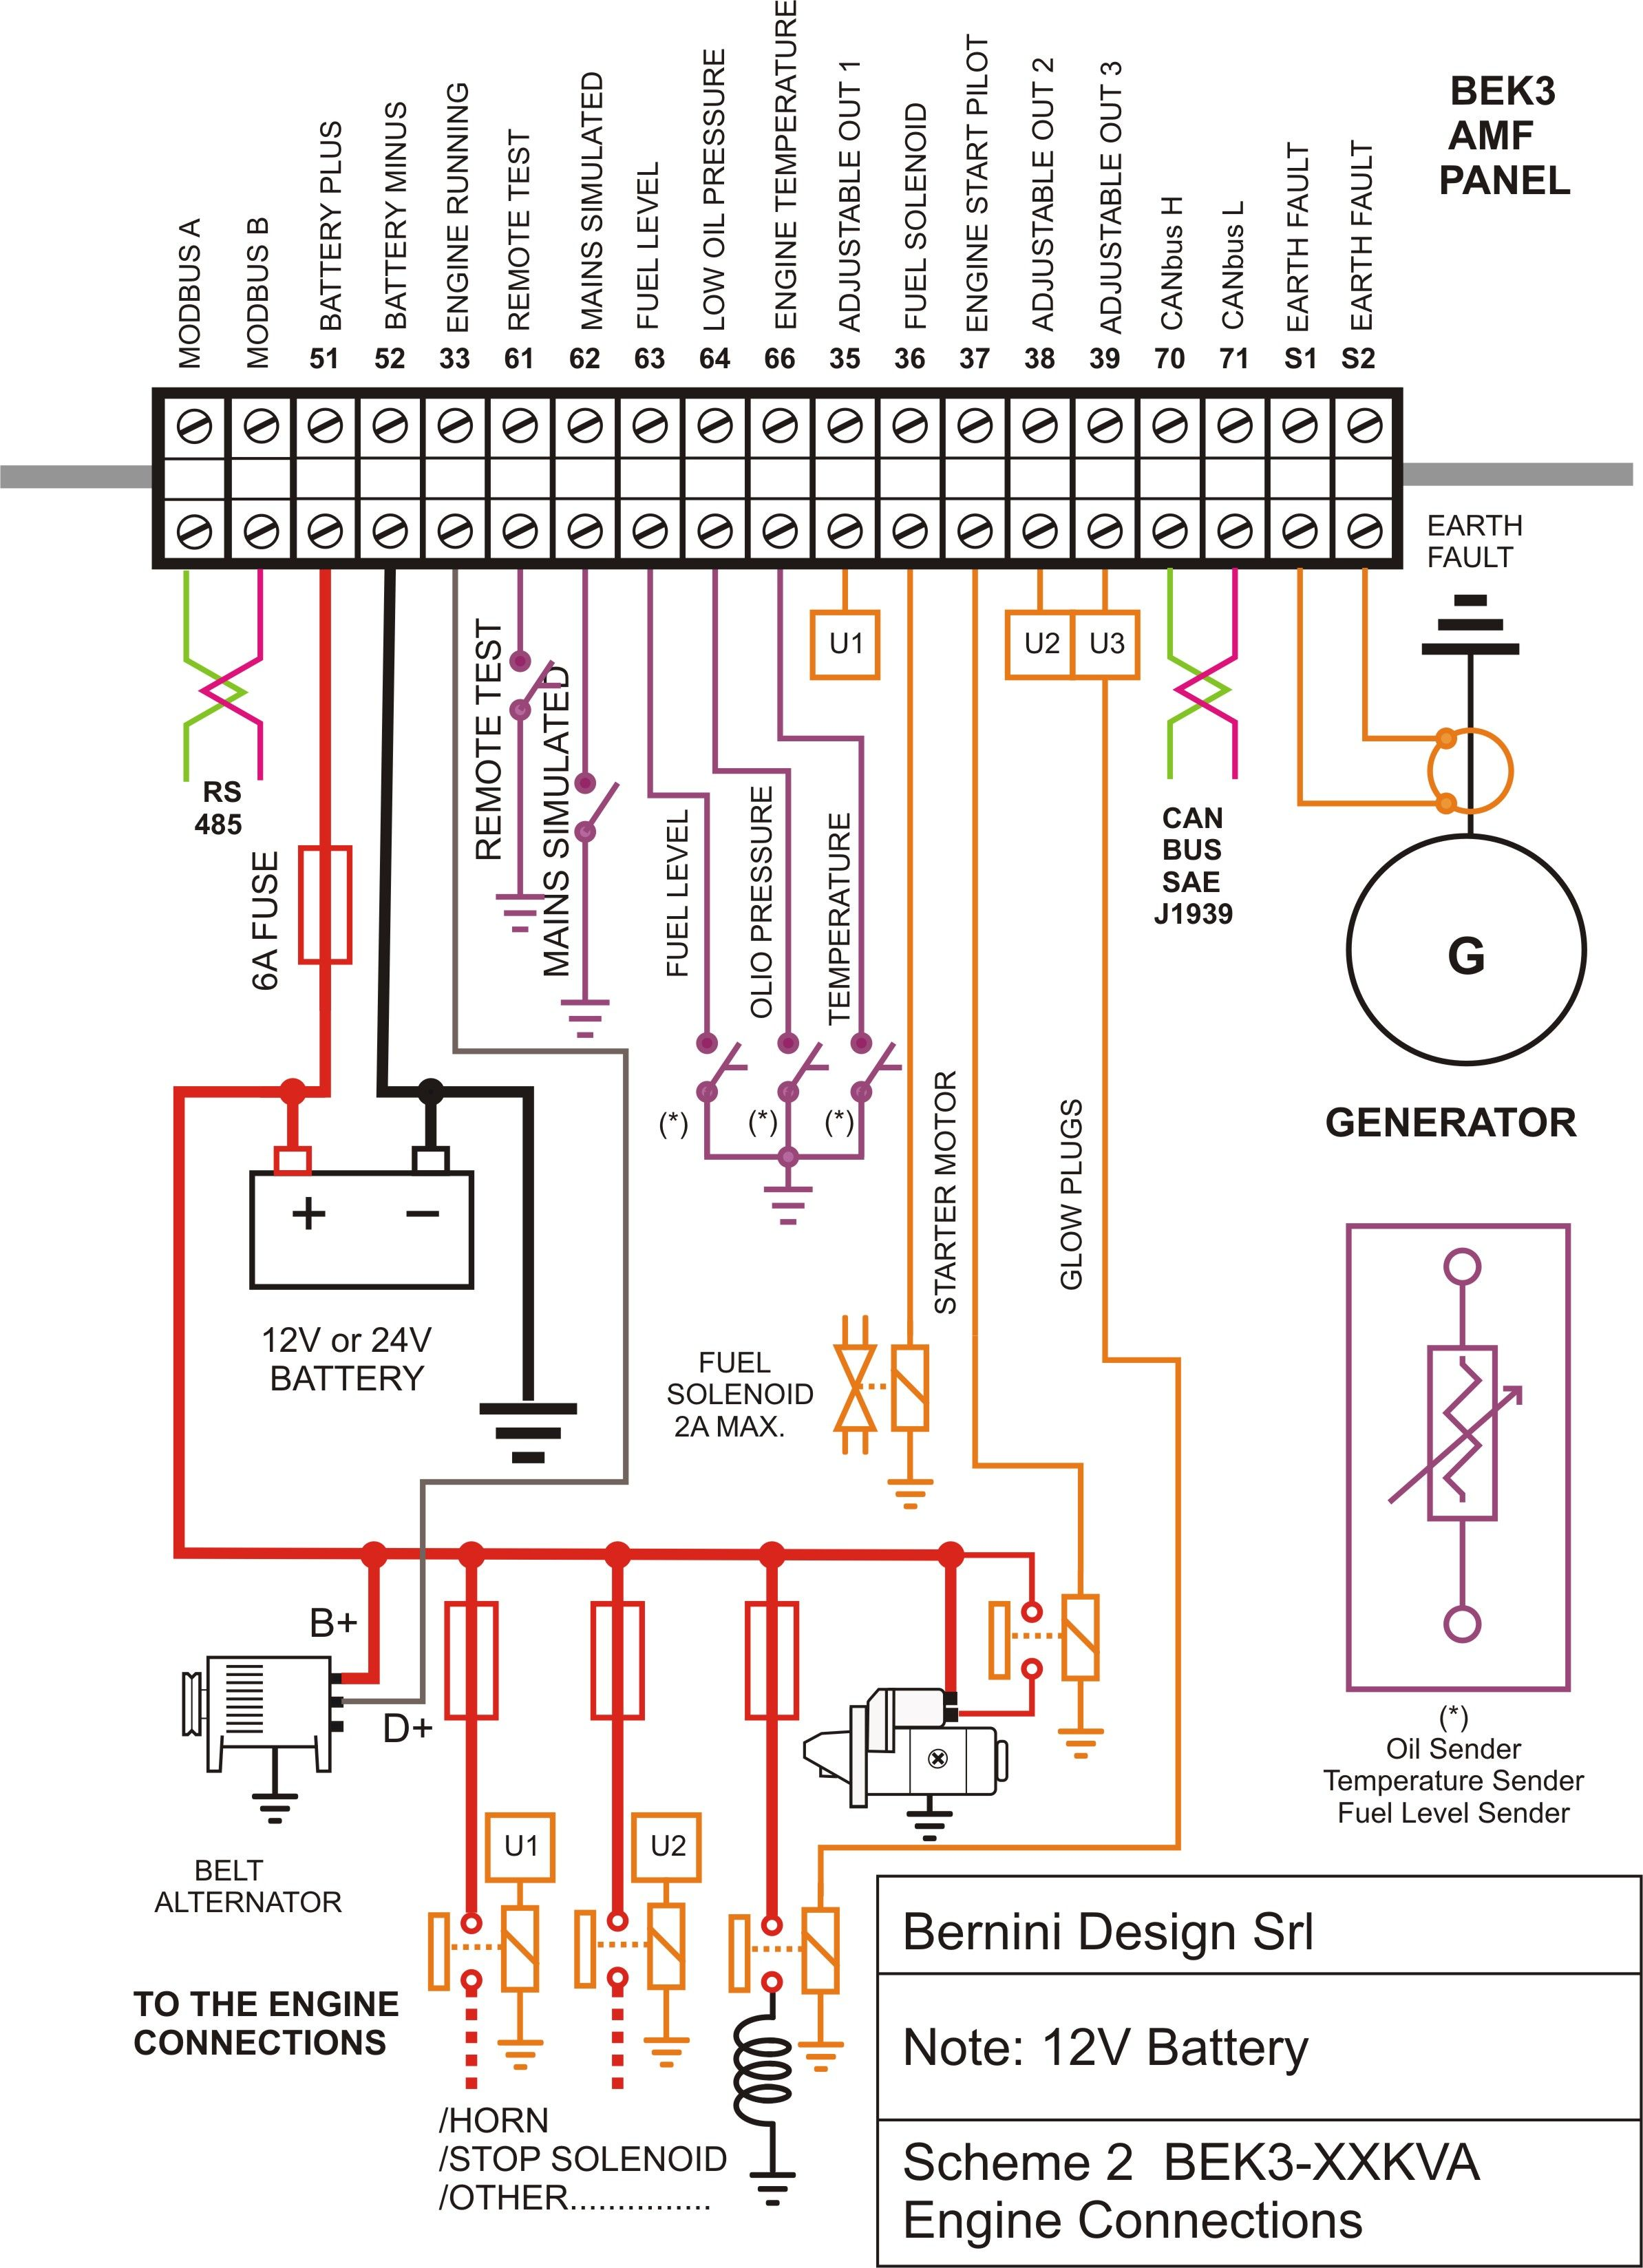 diesel generator control panel wiring diagram engine connections GameCube Controller Wiring Diagram diesel generator control panel wiring diagram engine connections